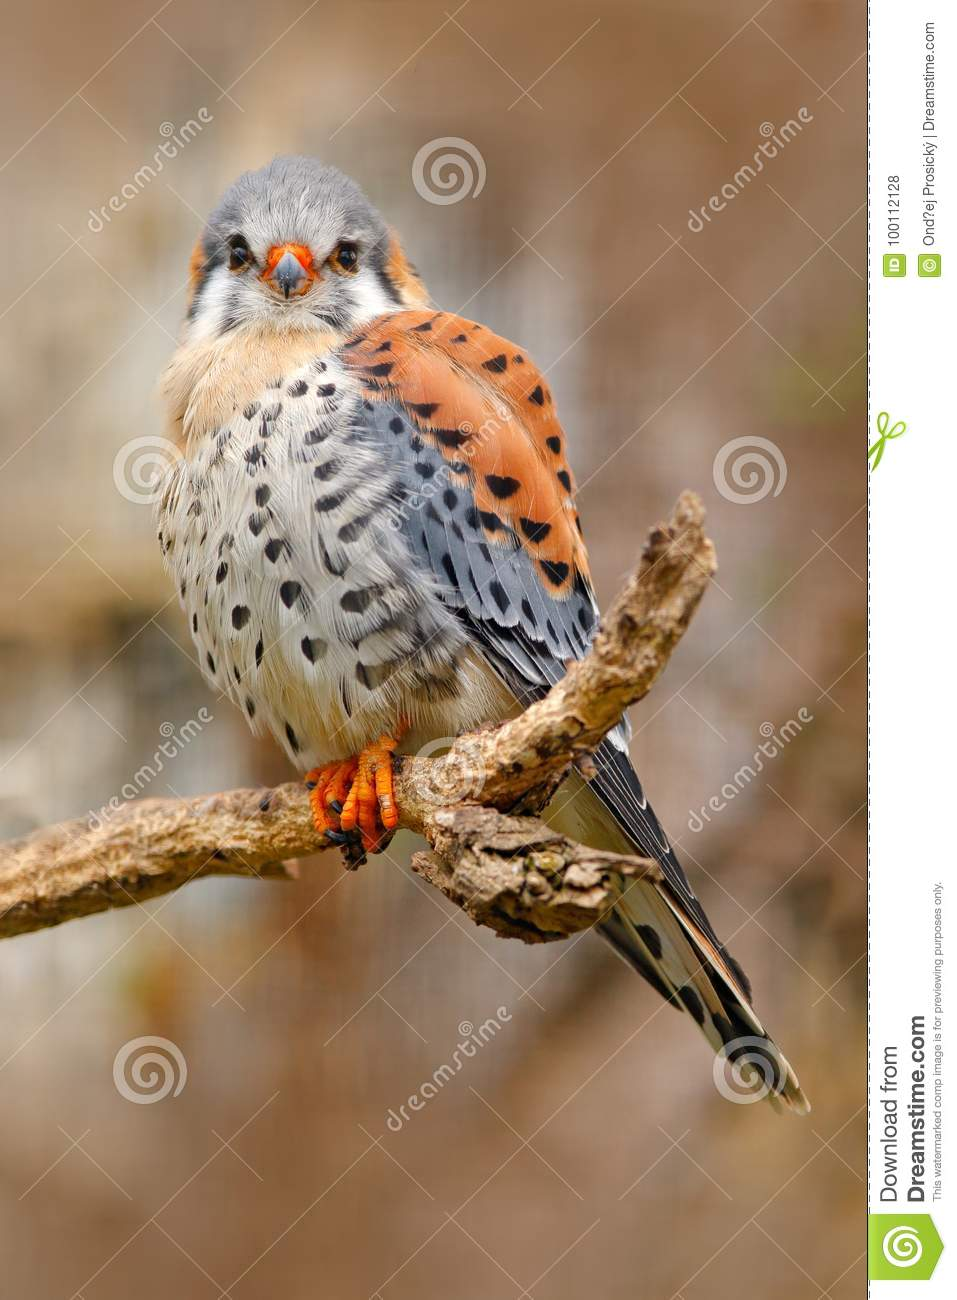 American kestrel Falco sparverius, sitting on the tree stump, little bird of prey sitting on the tree trunk, Mexico. Birds in the